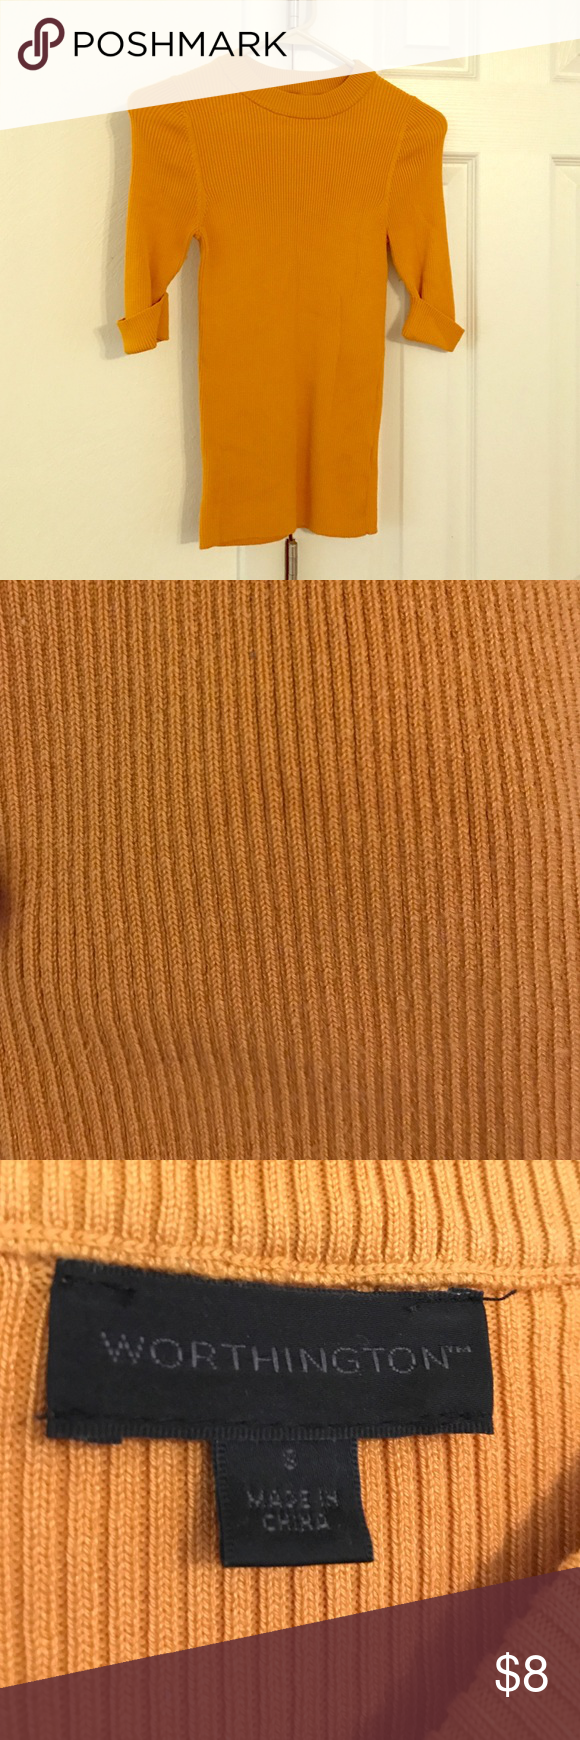 Worthington Three Quarter Length Sweater Great professional sweater! Looks great paired with brown or gray. Slight pilling around the armpits as pictured. Worthington Sweaters Crew & Scoop Necks